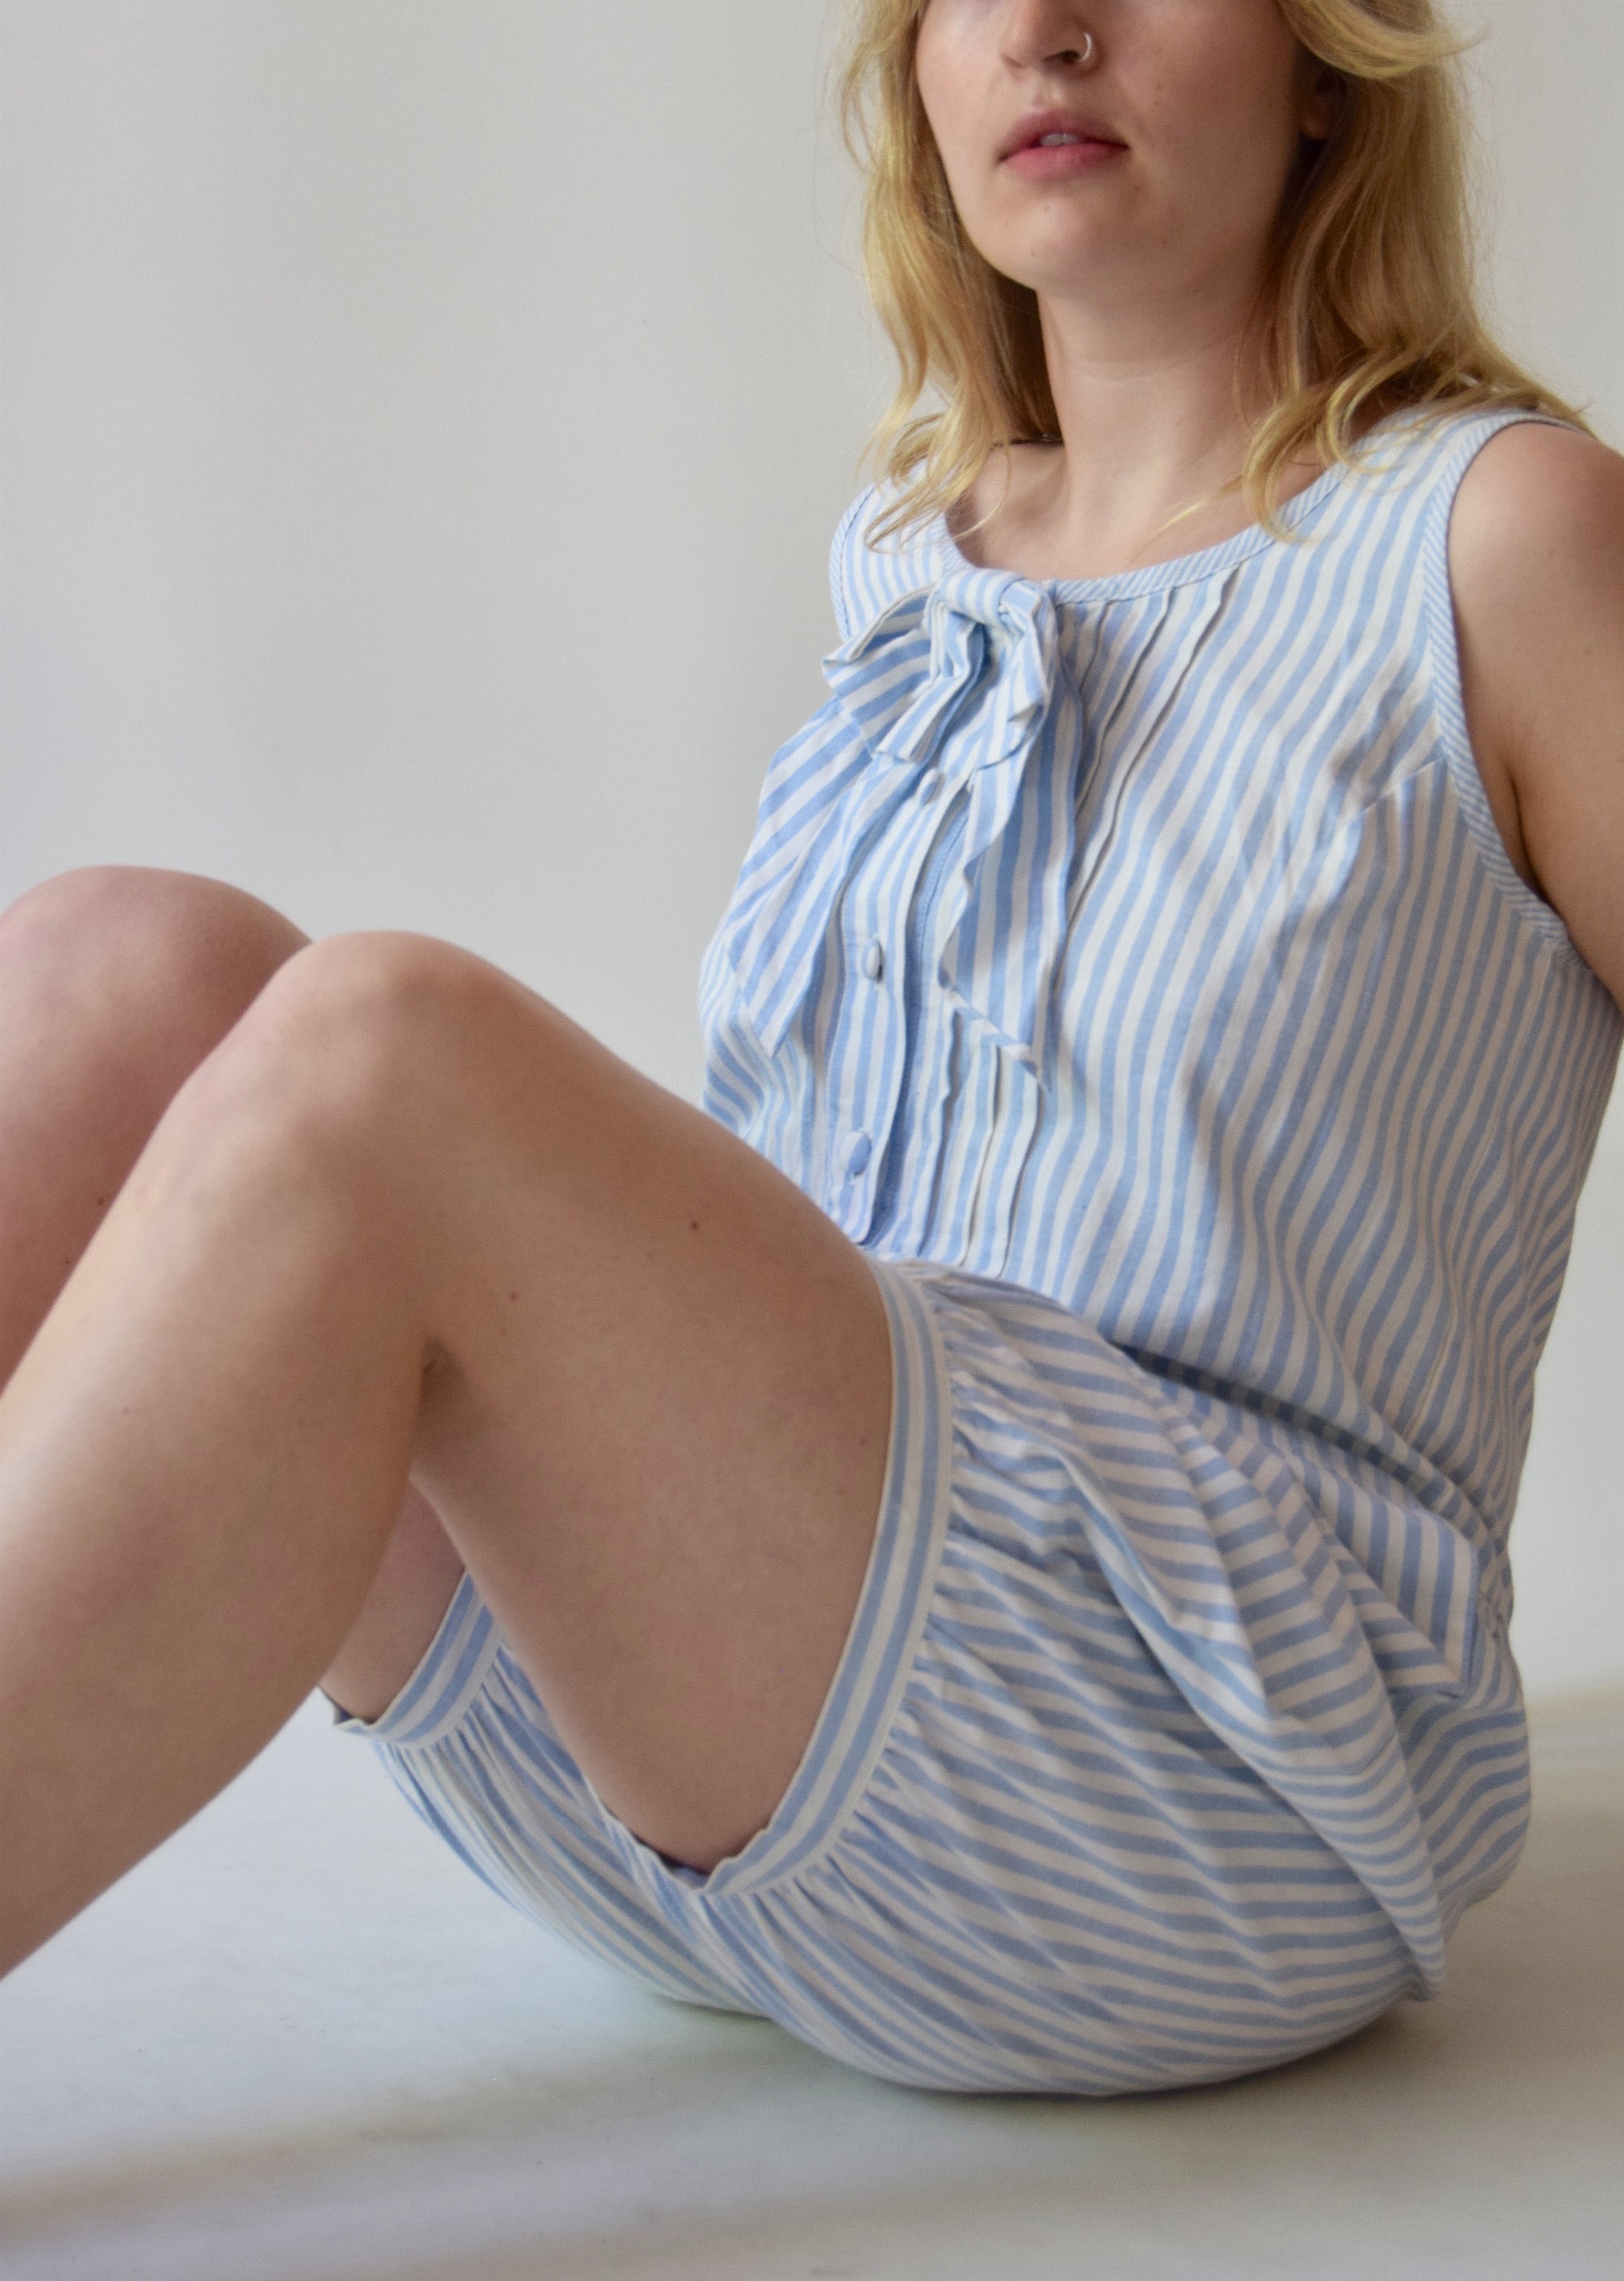 Vintage Blue and White Candy Stripe Romper FREE SHIPPING TO THE U.S.